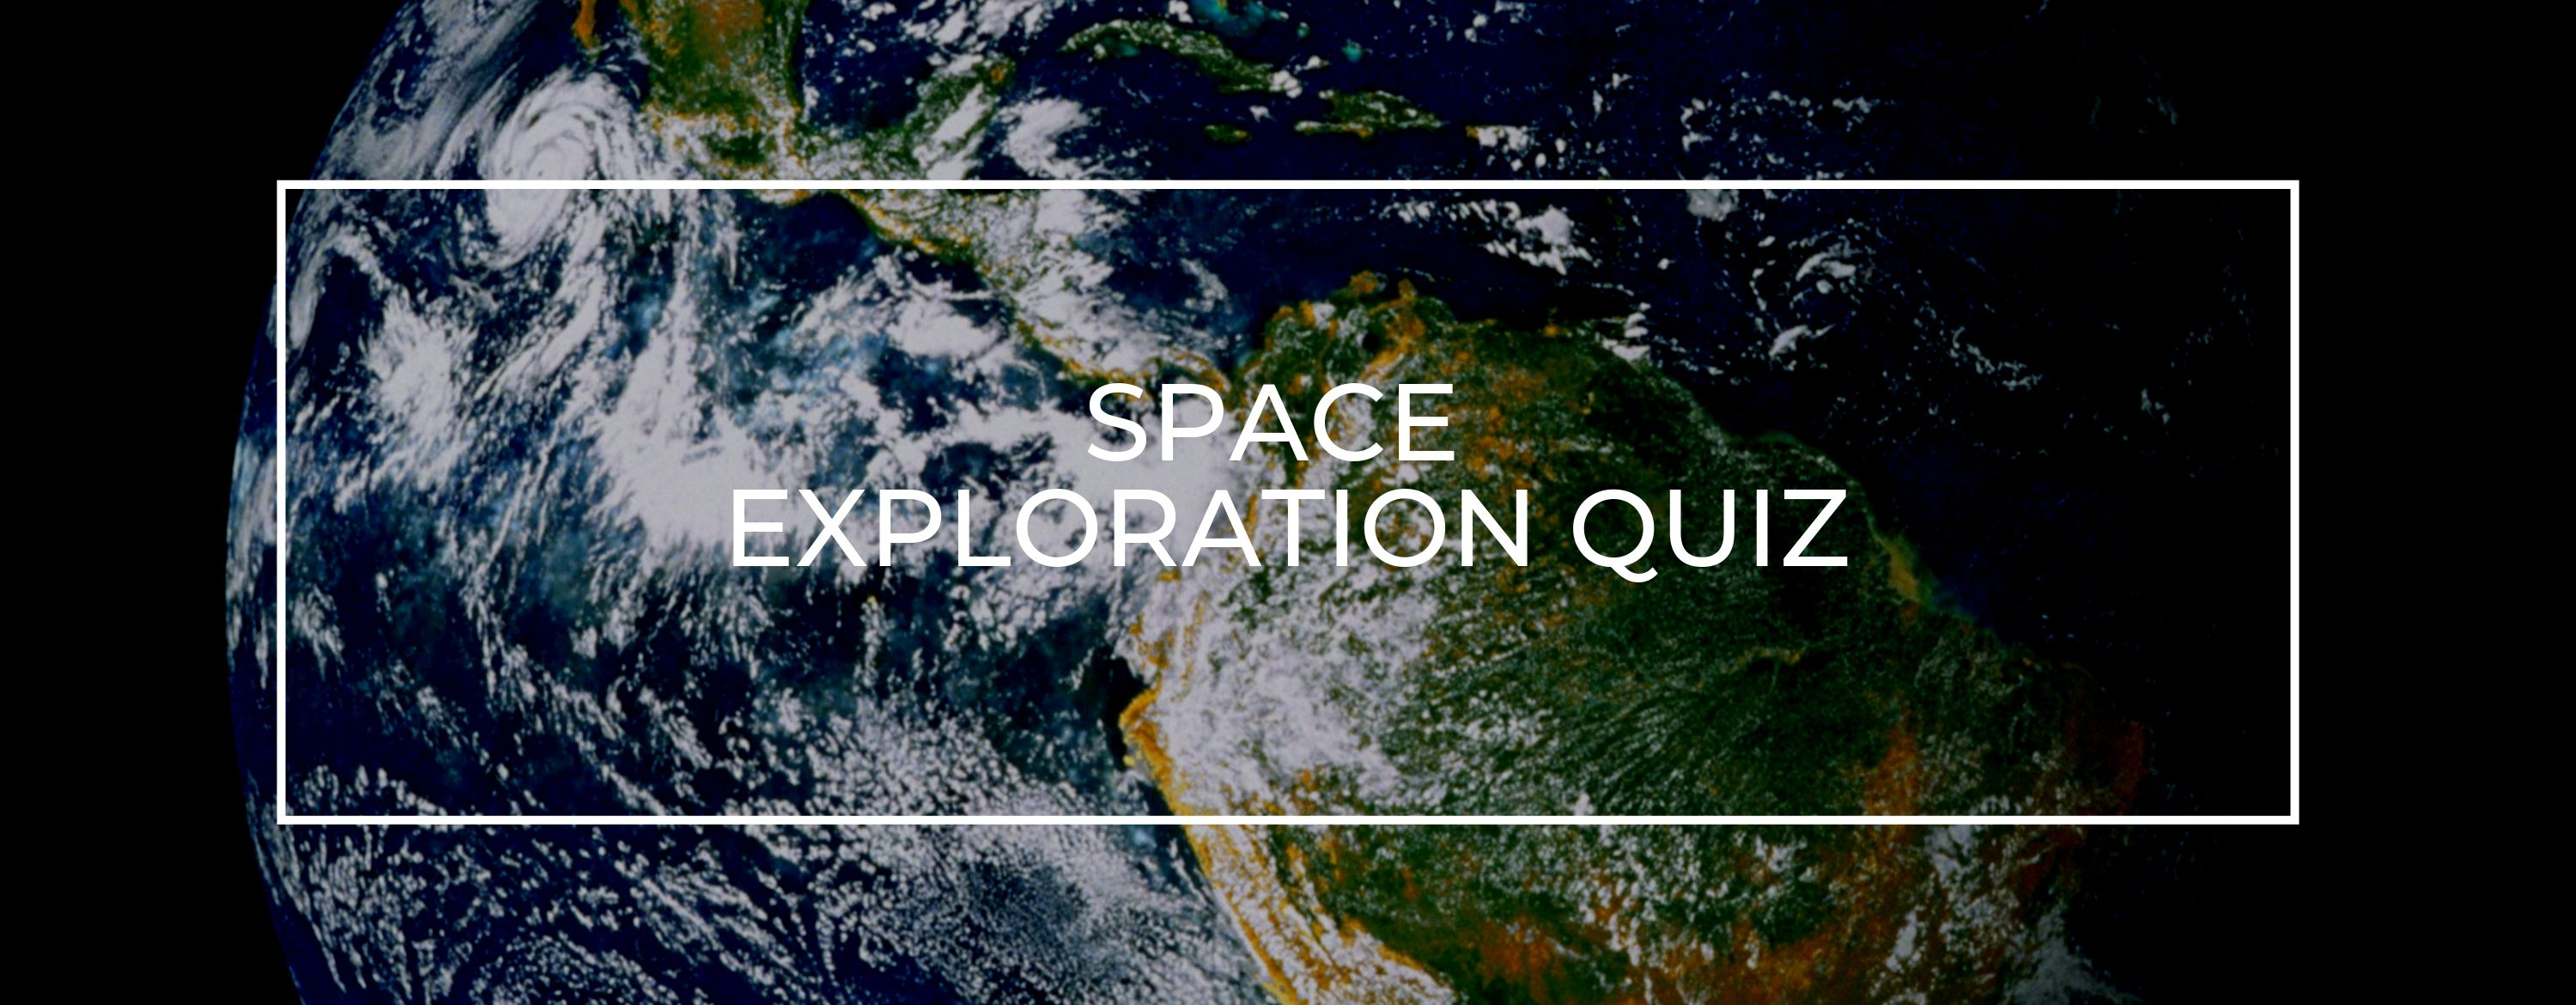 Space Exploration Quiz